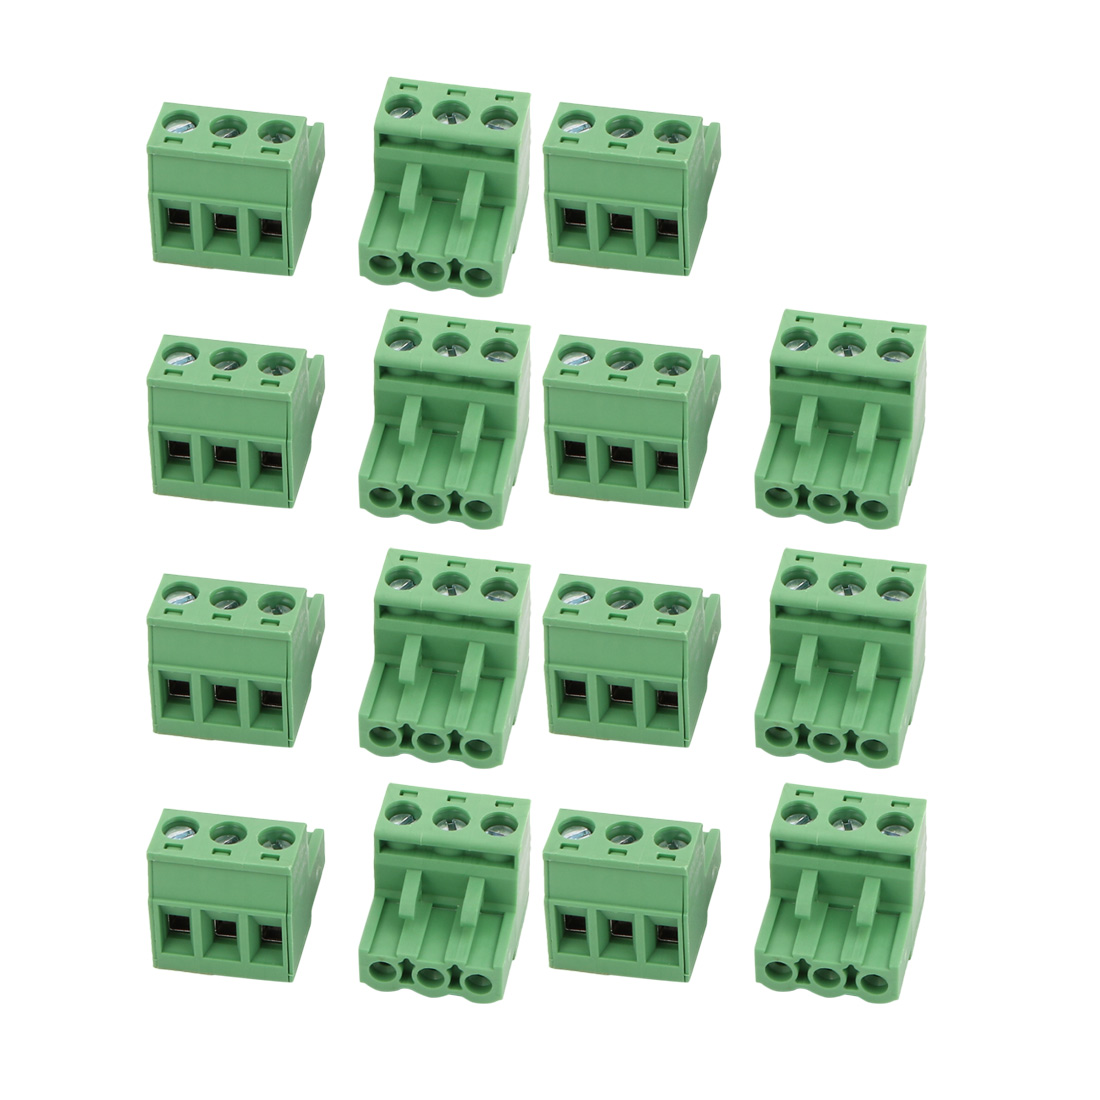 15Pcs AC300V 15A 5.08mm Pitch 3 Position Terminal Block Wire Connection